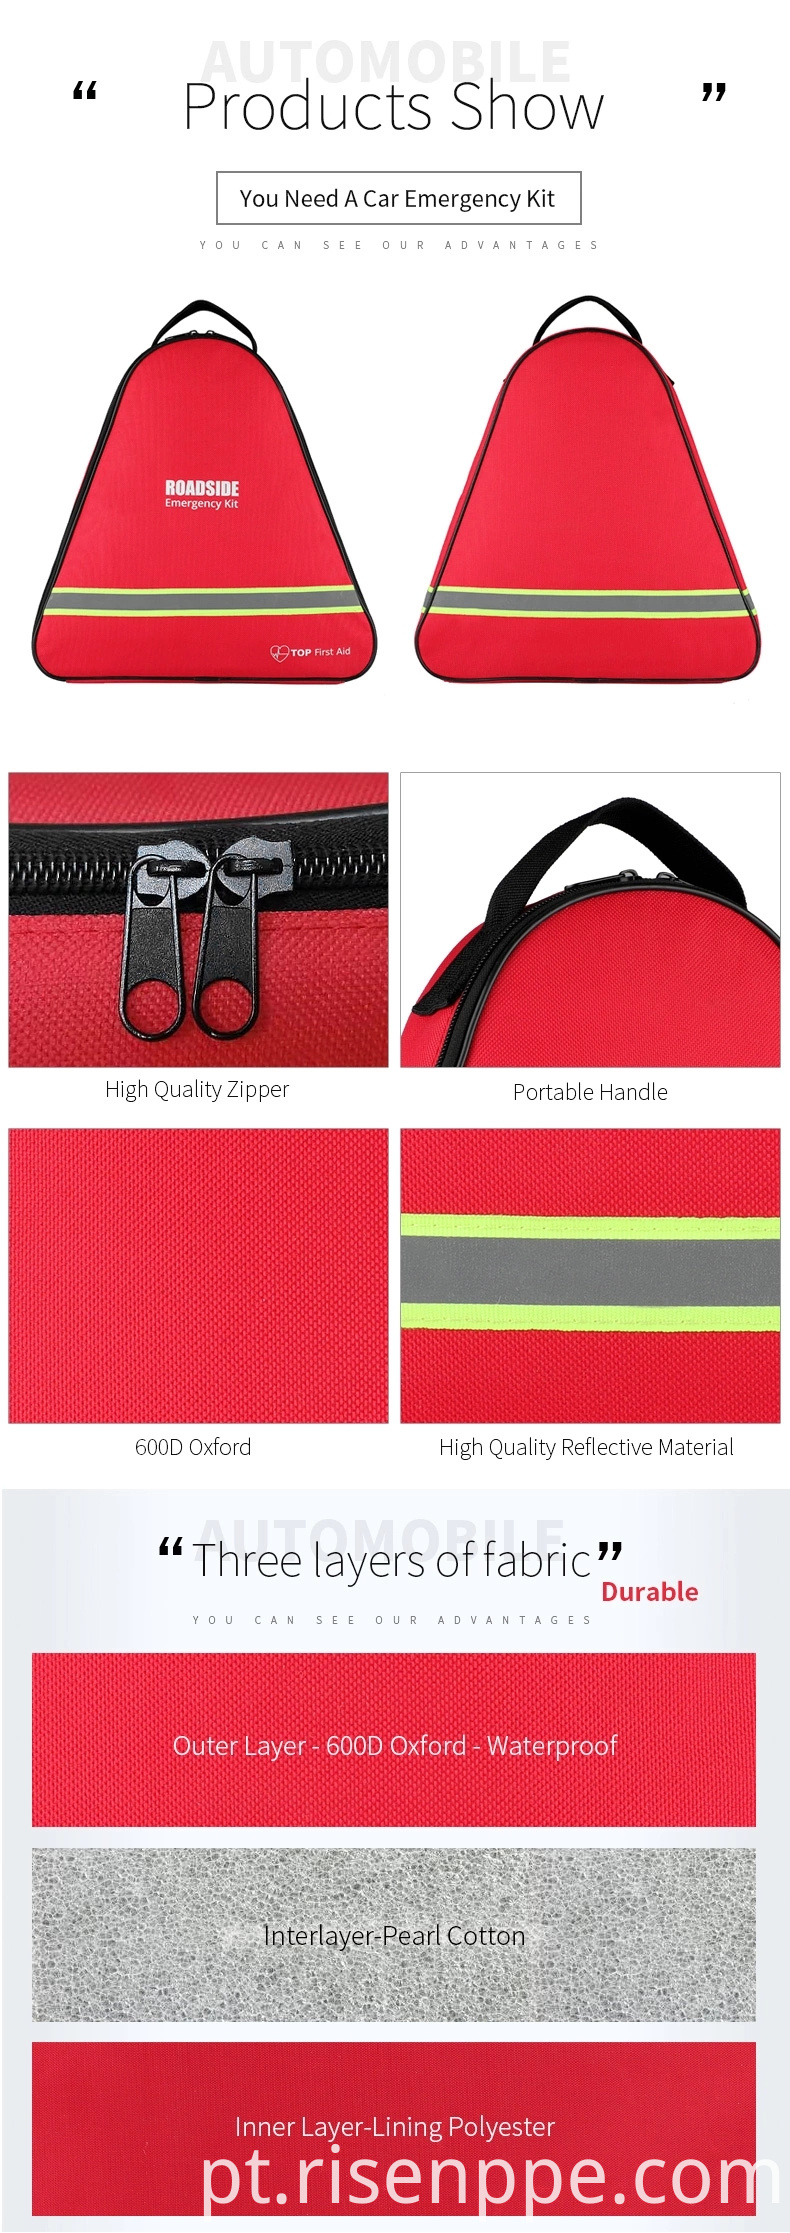 Roadside Assistance Emergency Car Kit First Aid Kit Jumper Cables Tow Strap Led Flash Light Rain Coat Tire Pressure Gauge Safety Vest And More Ideal Winter Accessory For Your Car Truck Or Suv Jpg Webp